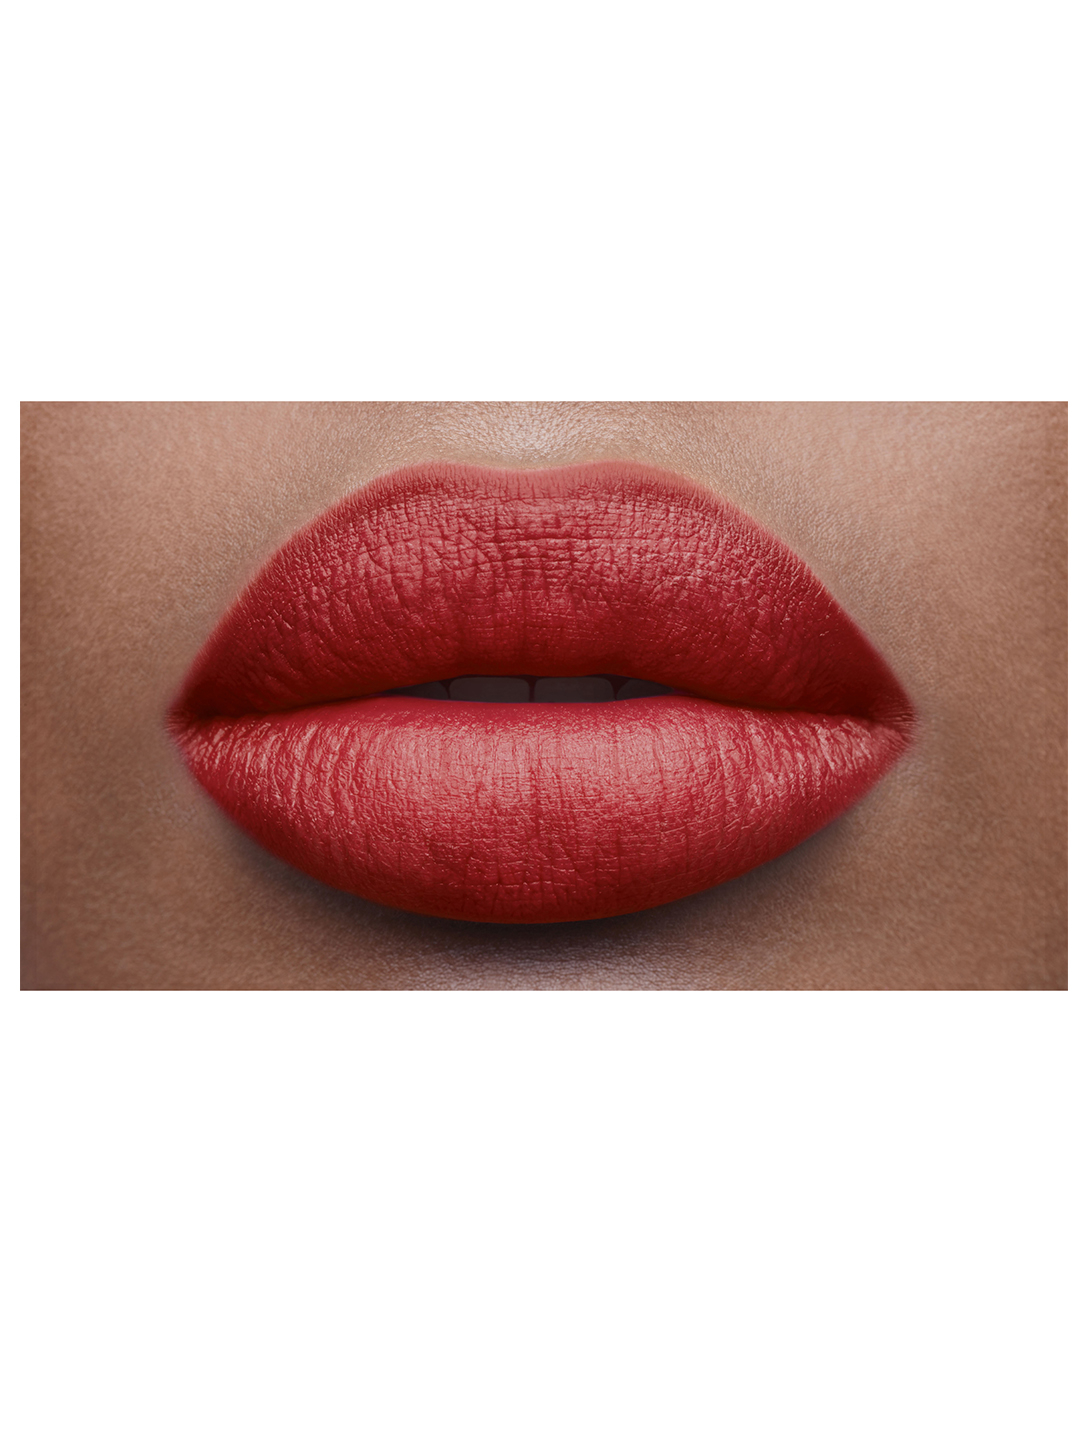 YVES SAINT LAURENT Tatouage Couture Liquid Matte Lip Stain Beauty Red